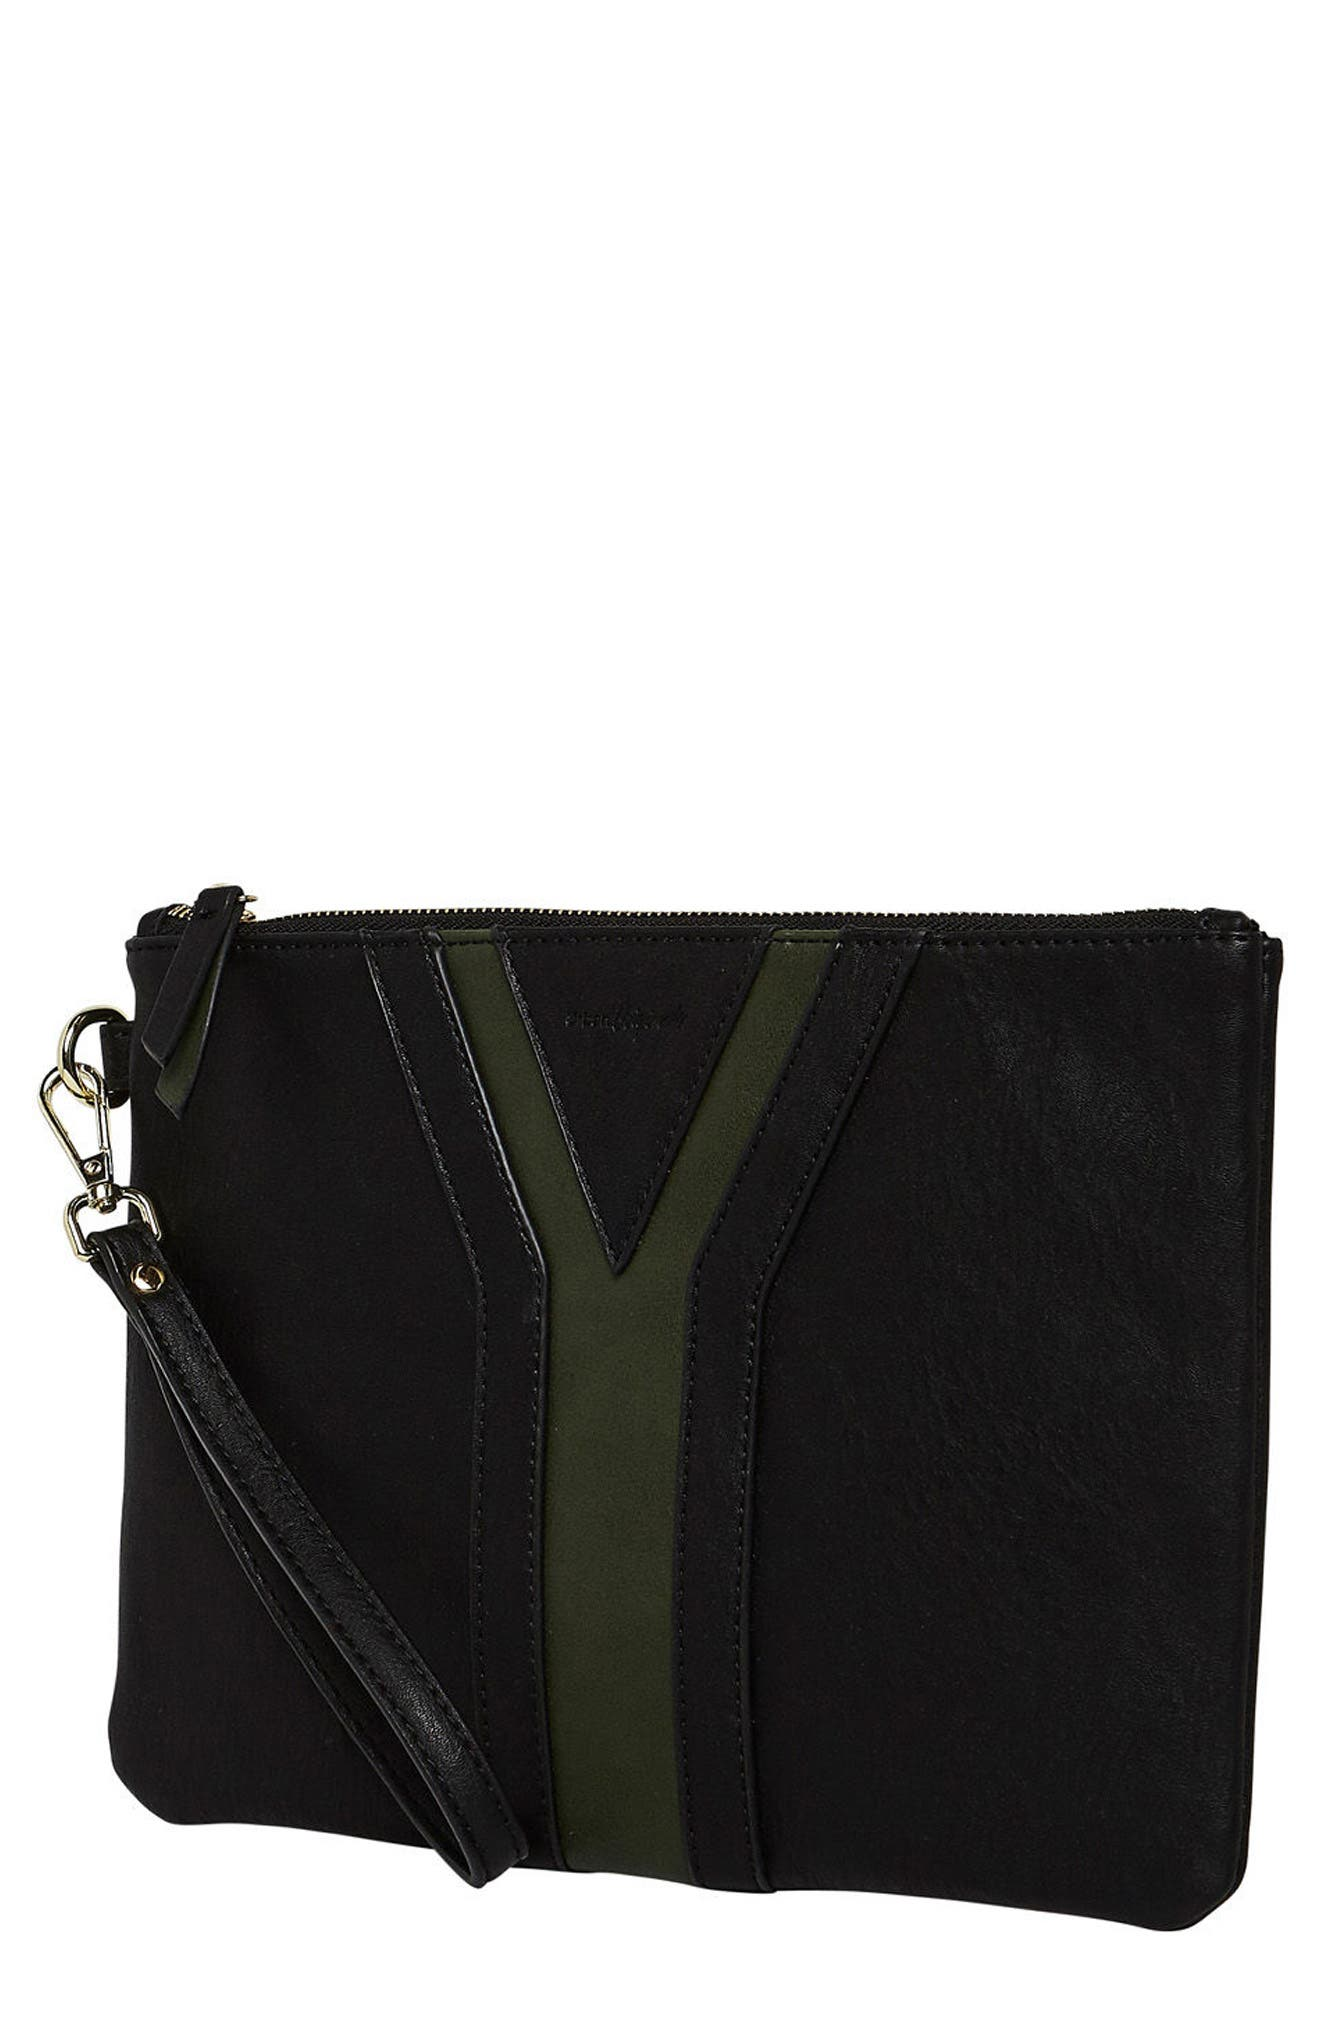 Alternate Image 1 Selected - Urban Originals All She Wants Vegan Leather Clutch